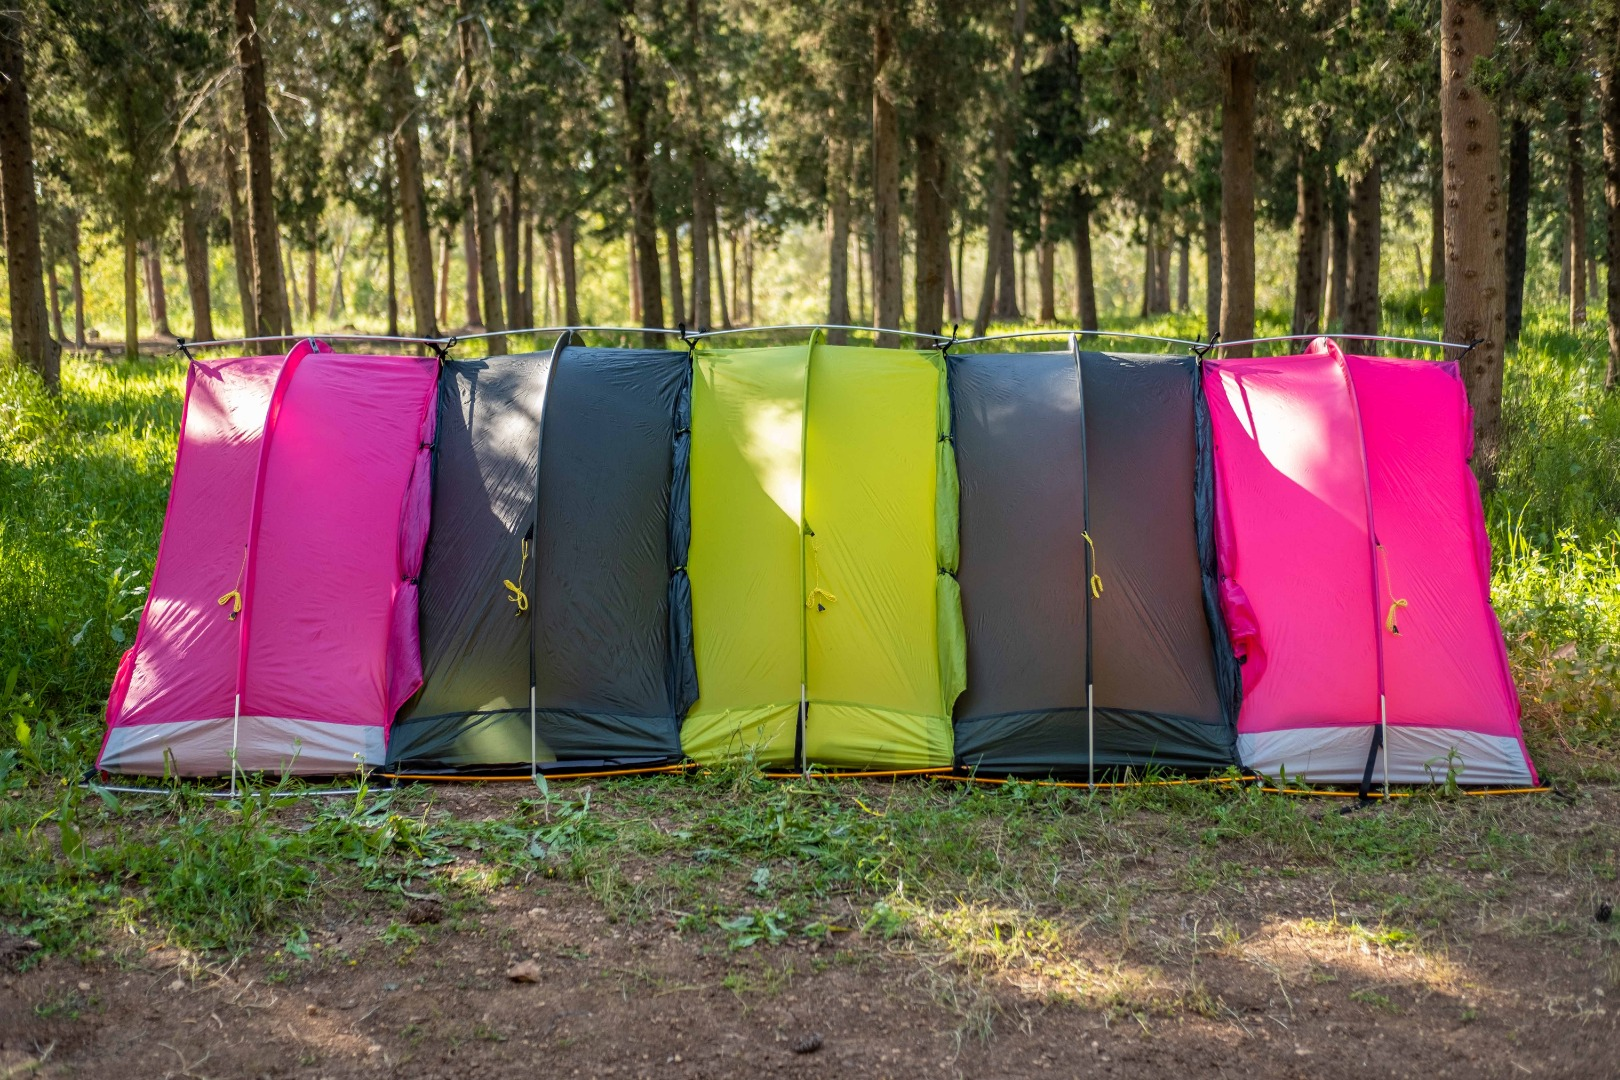 RhinoWolf 2.0 all-in-one lightweight tent maintains the modularity